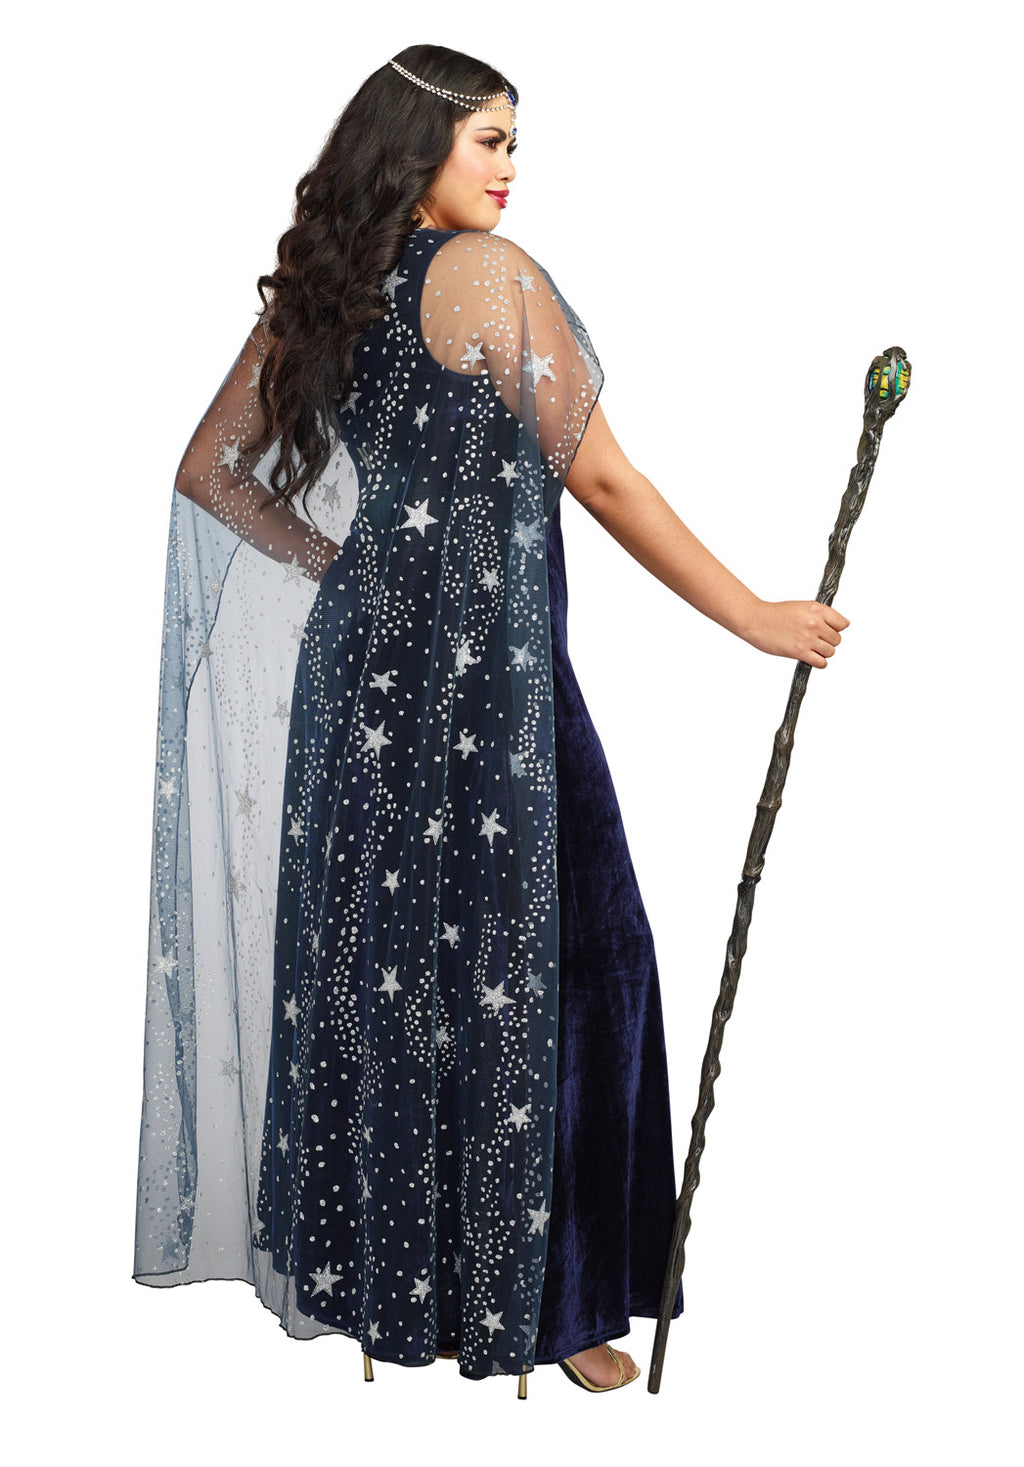 Dreamgirl Plus Size Sorceress Costume